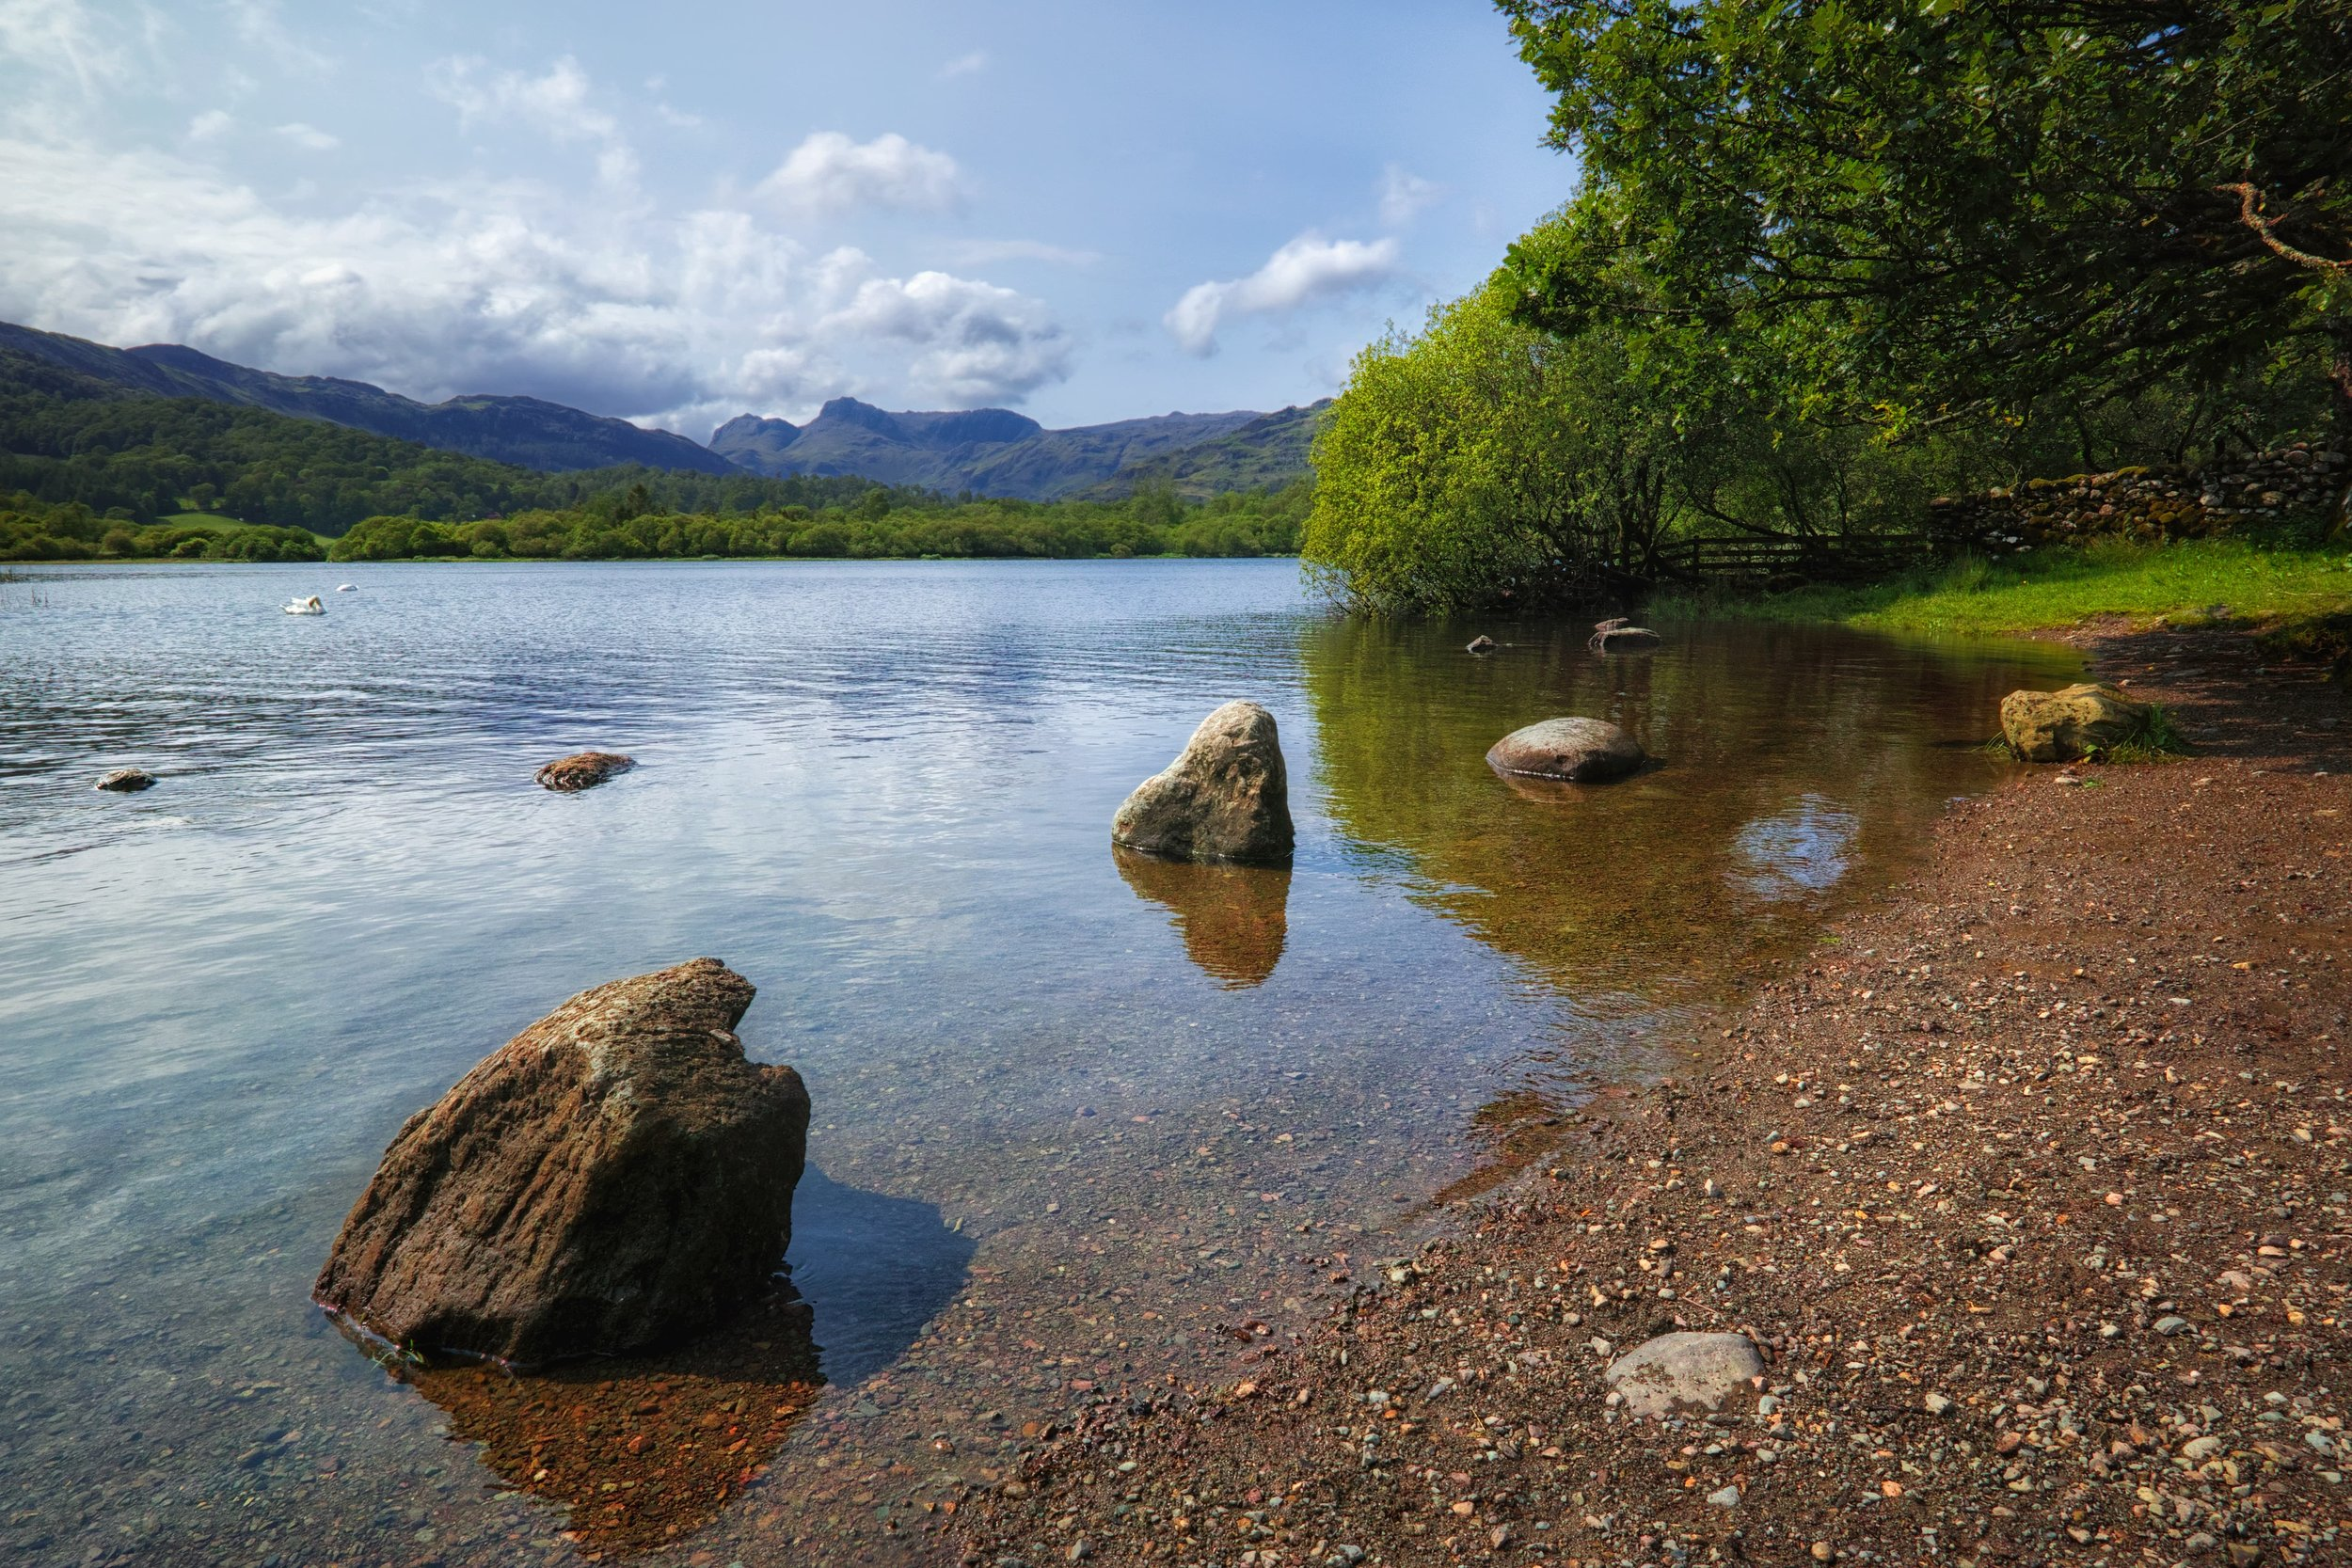 Like most Lake District/Cumbrian/Northern England place names, Elter Water gets its name from Old Norse, the language of the Vikings. Read the rest of this blog post here  https://www.iancylkowski.com/blog/2019/6/13/happier-times